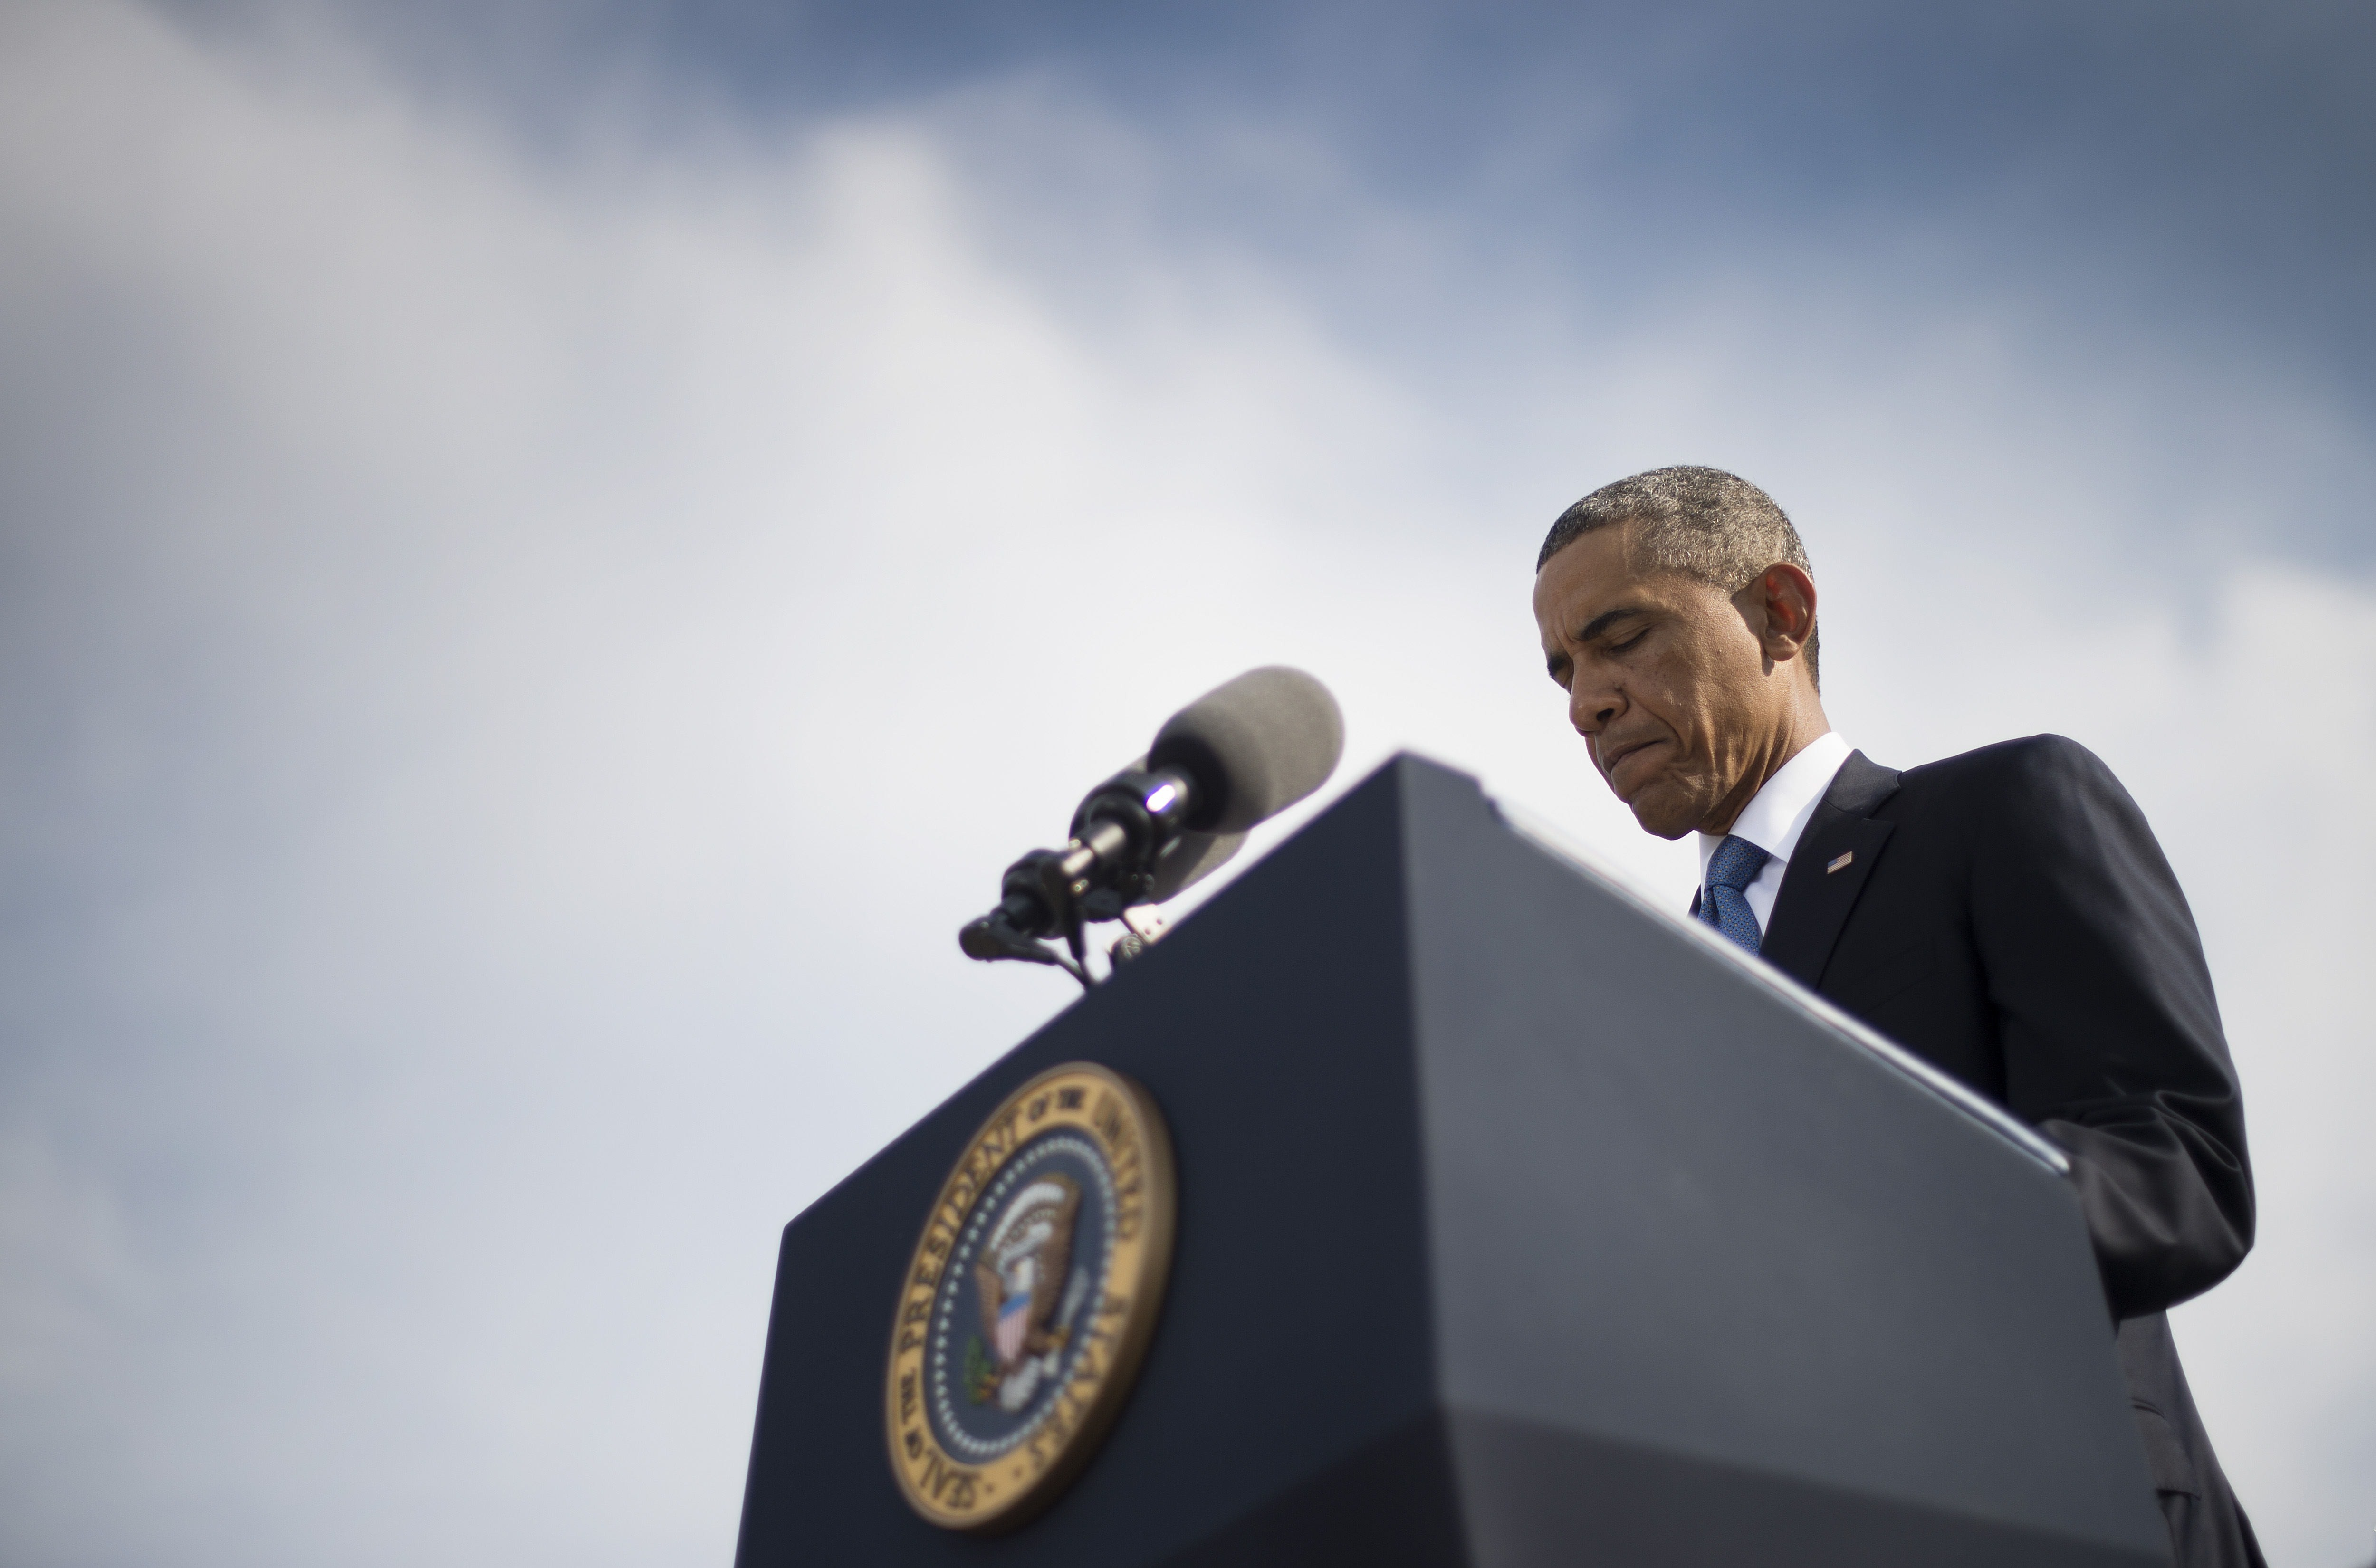 US President Barack Obama speaks at the Pentagon in Washington, DC, September 11, 2014, during a ceremony marking the 13th anniversary of the 9/11 attacks on the United States.